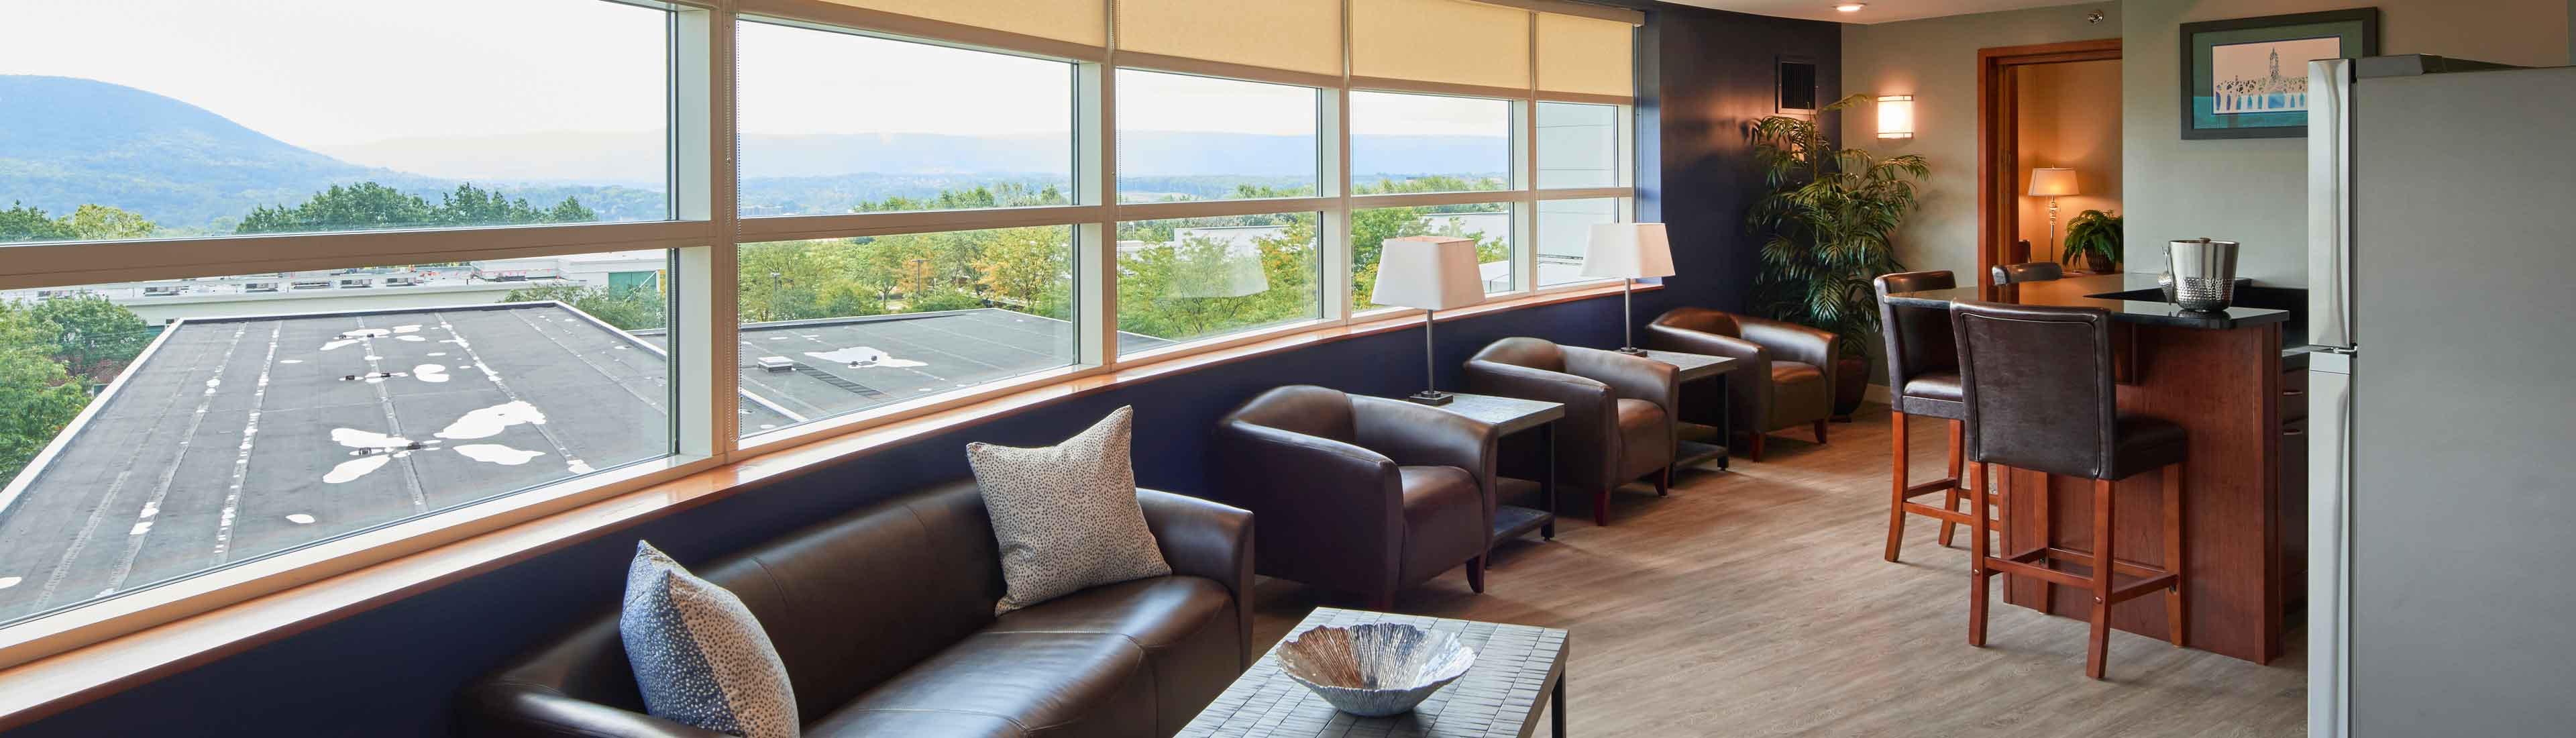 Mt Nittany Suite Sitting Area The Penn Stater